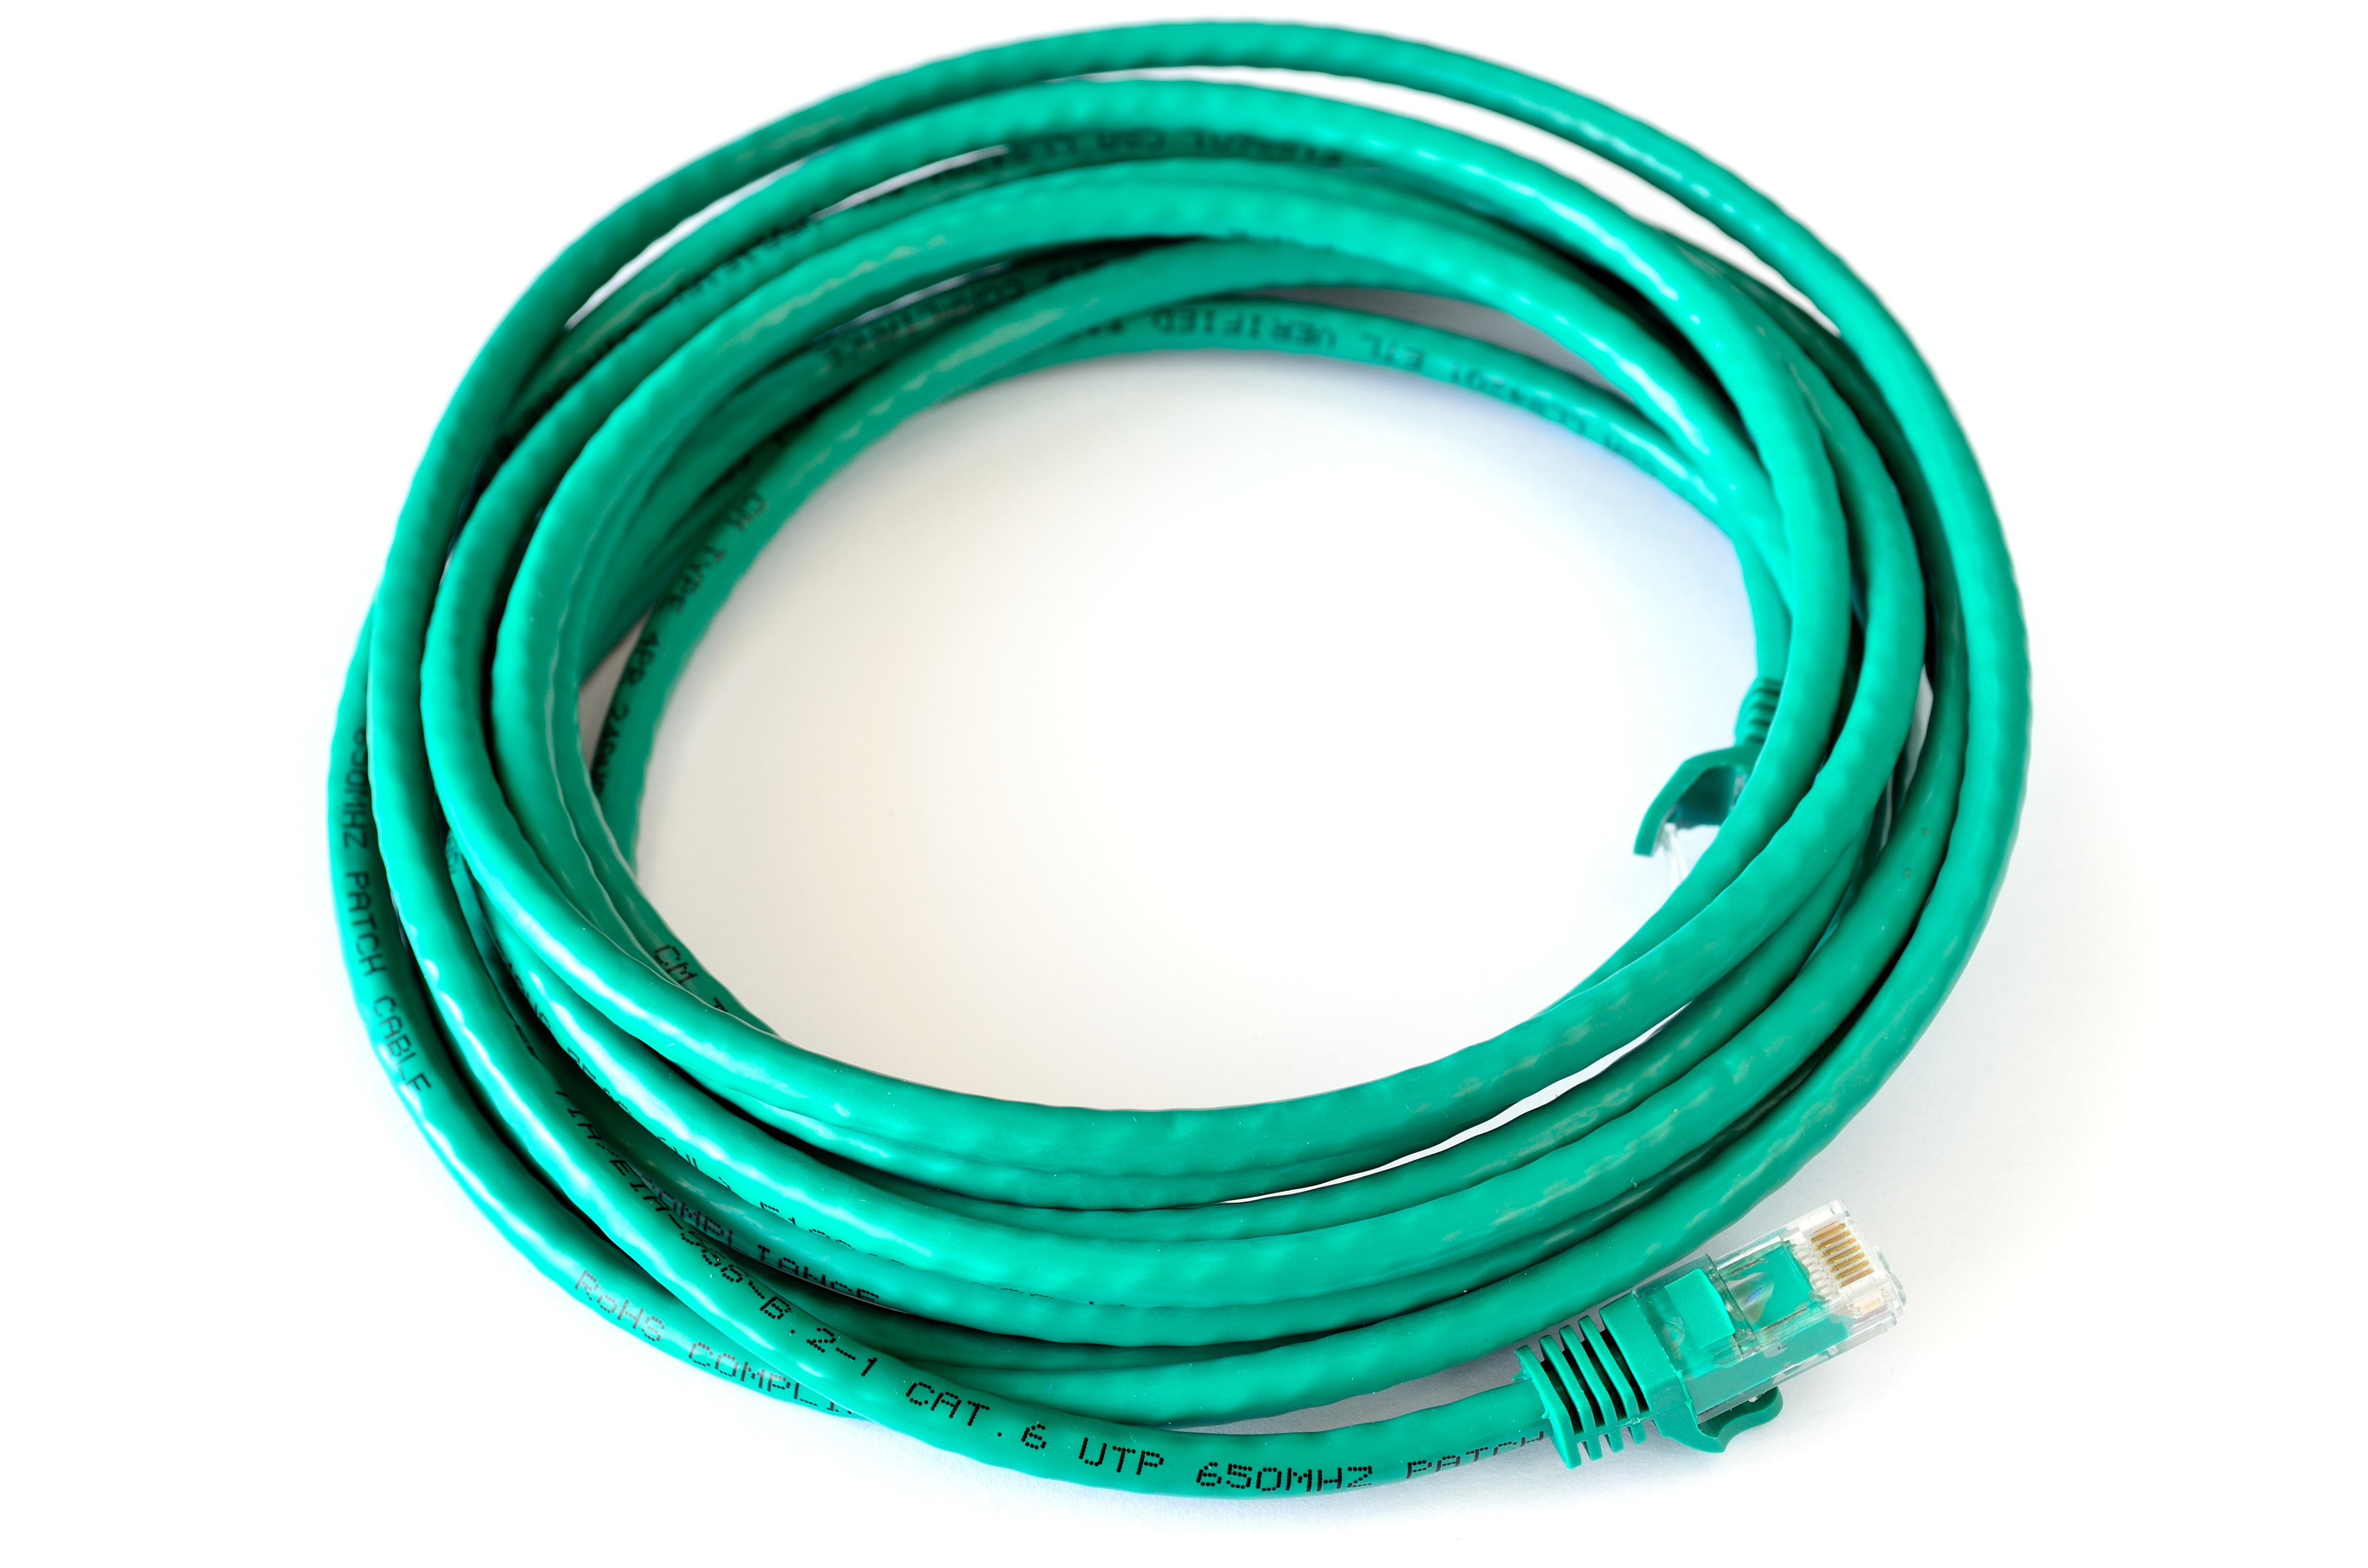 Cat 6 Patch Cable Wiring Diagram Cat6 Ether Libraries Limited Ethernet Diagrams Cables Crossover Category Wikipediacat 19